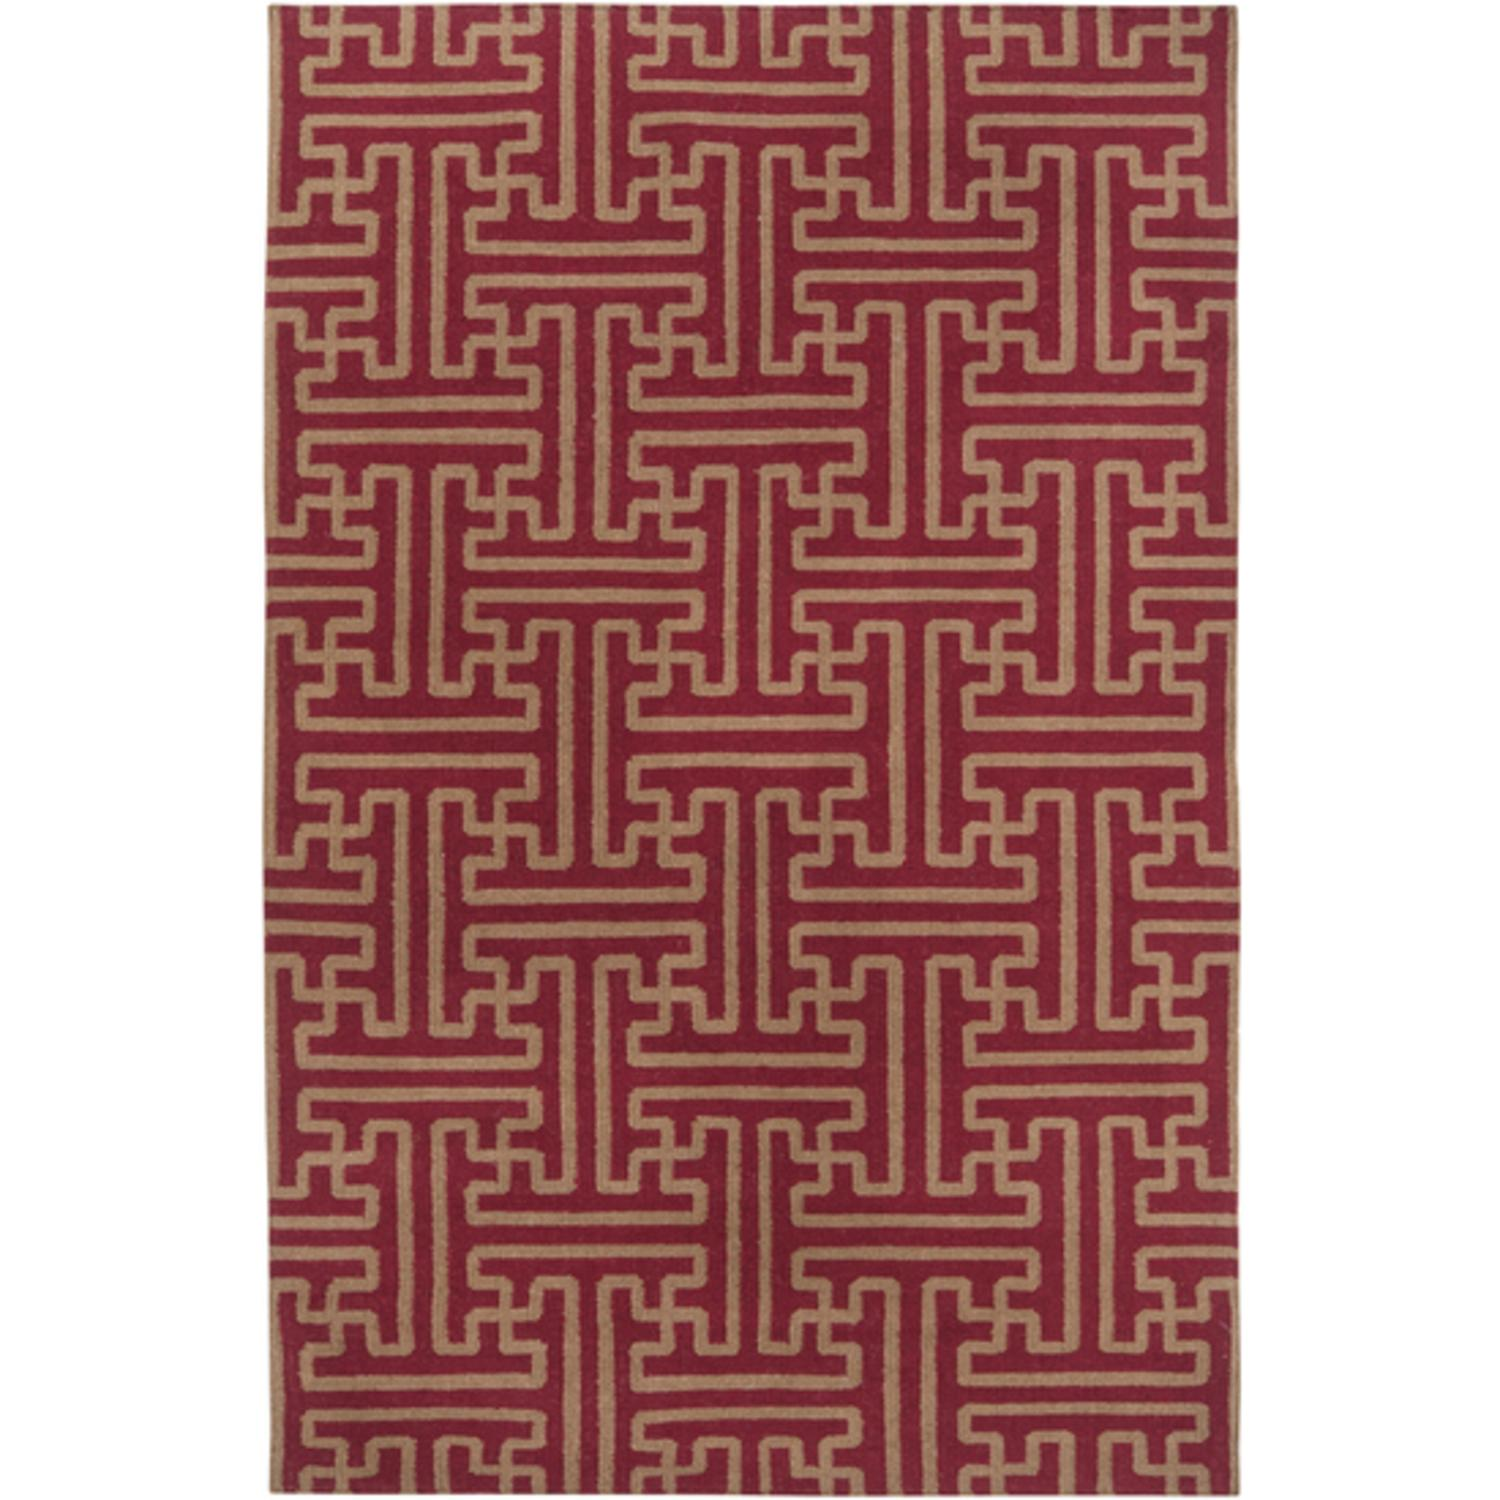 5' x 8' Block Pillars Brown and Maroon Red Wool Area Throw Rug